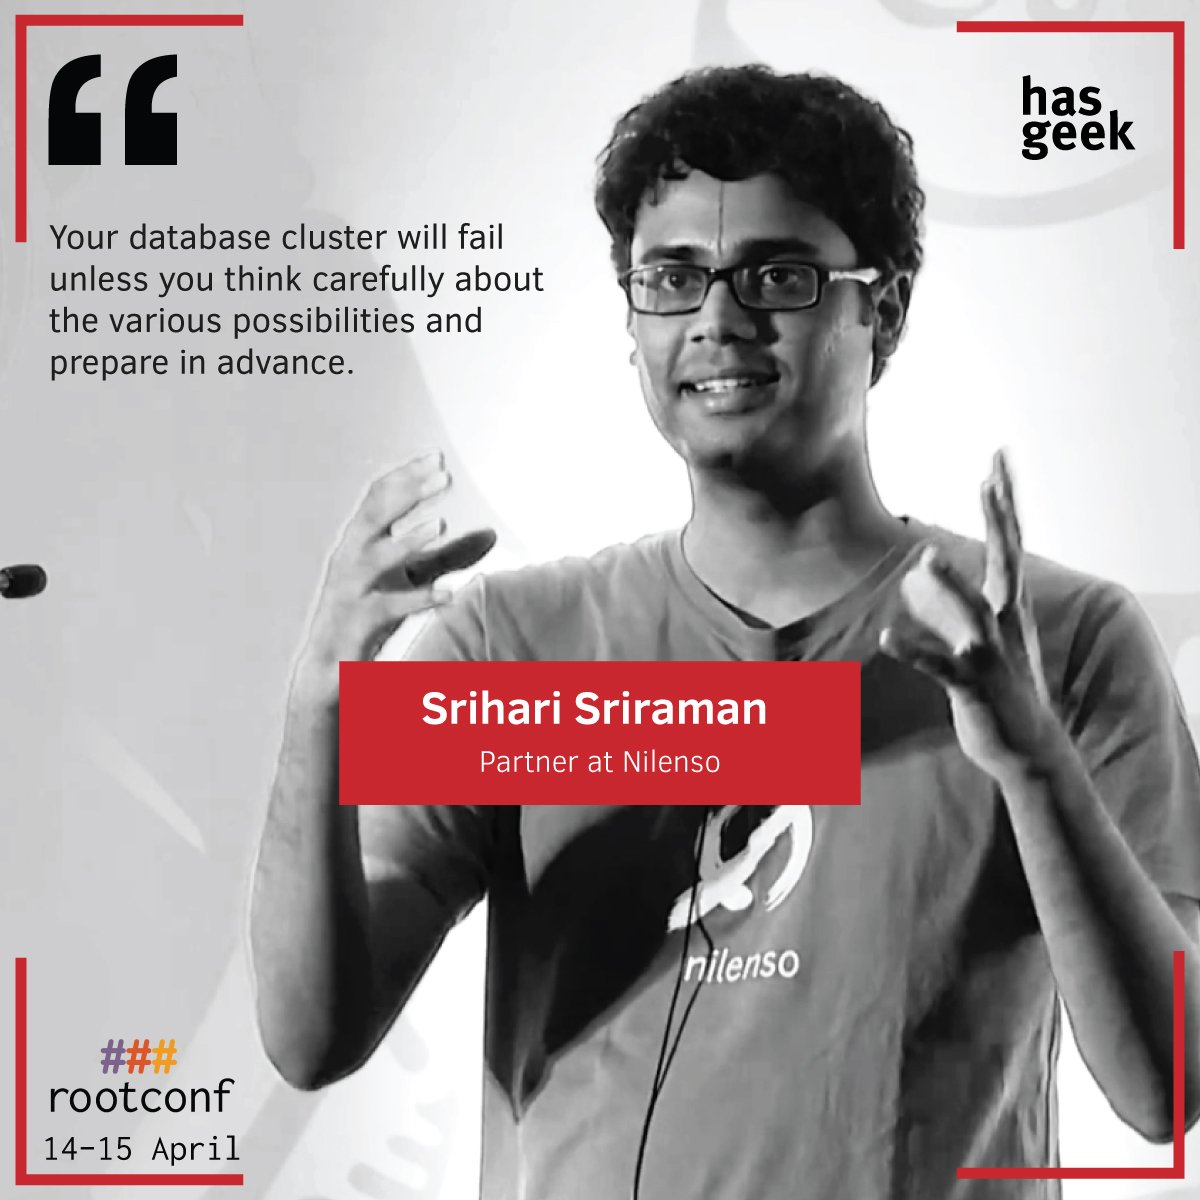 Catch @SrihariSriraman talk about building  postgres clusters at @rootconf   Full schedule: https://t.co/CyPV6k7NMM https://t.co/p39cImH25b